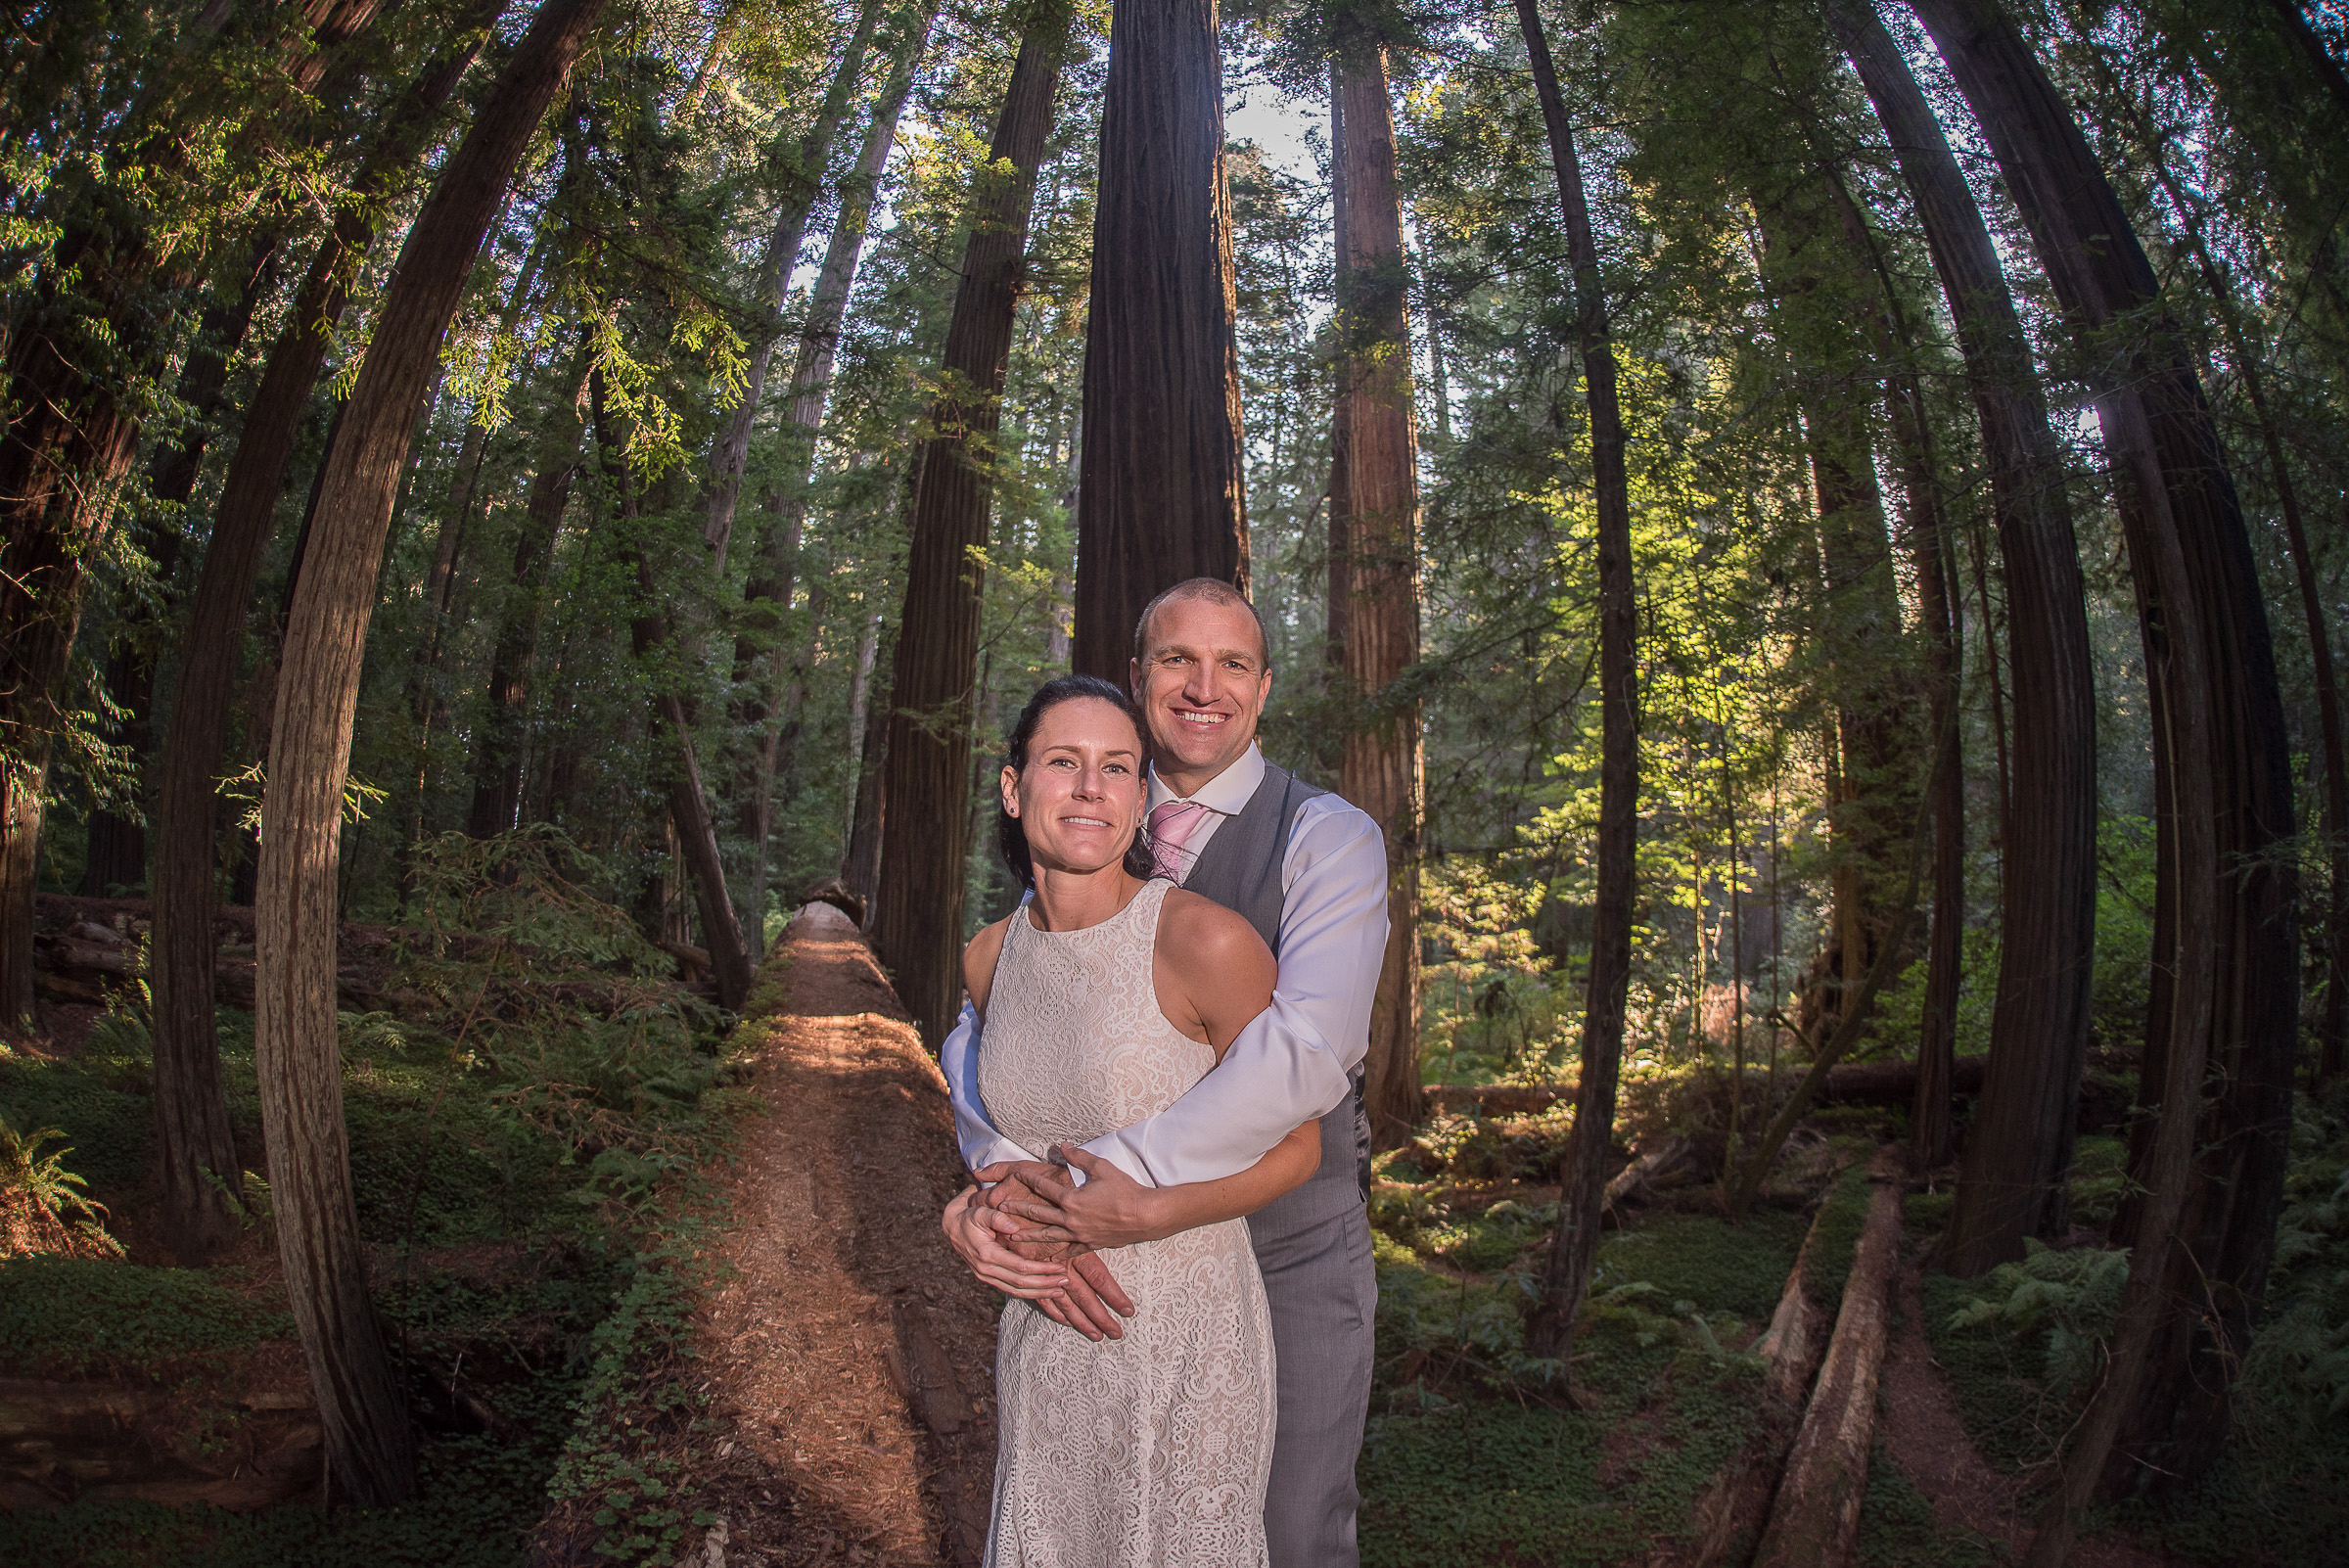 AVENUE OF THE GIANTS MAGICAL ELOPEMENT PARKYS PICS-29.JPG